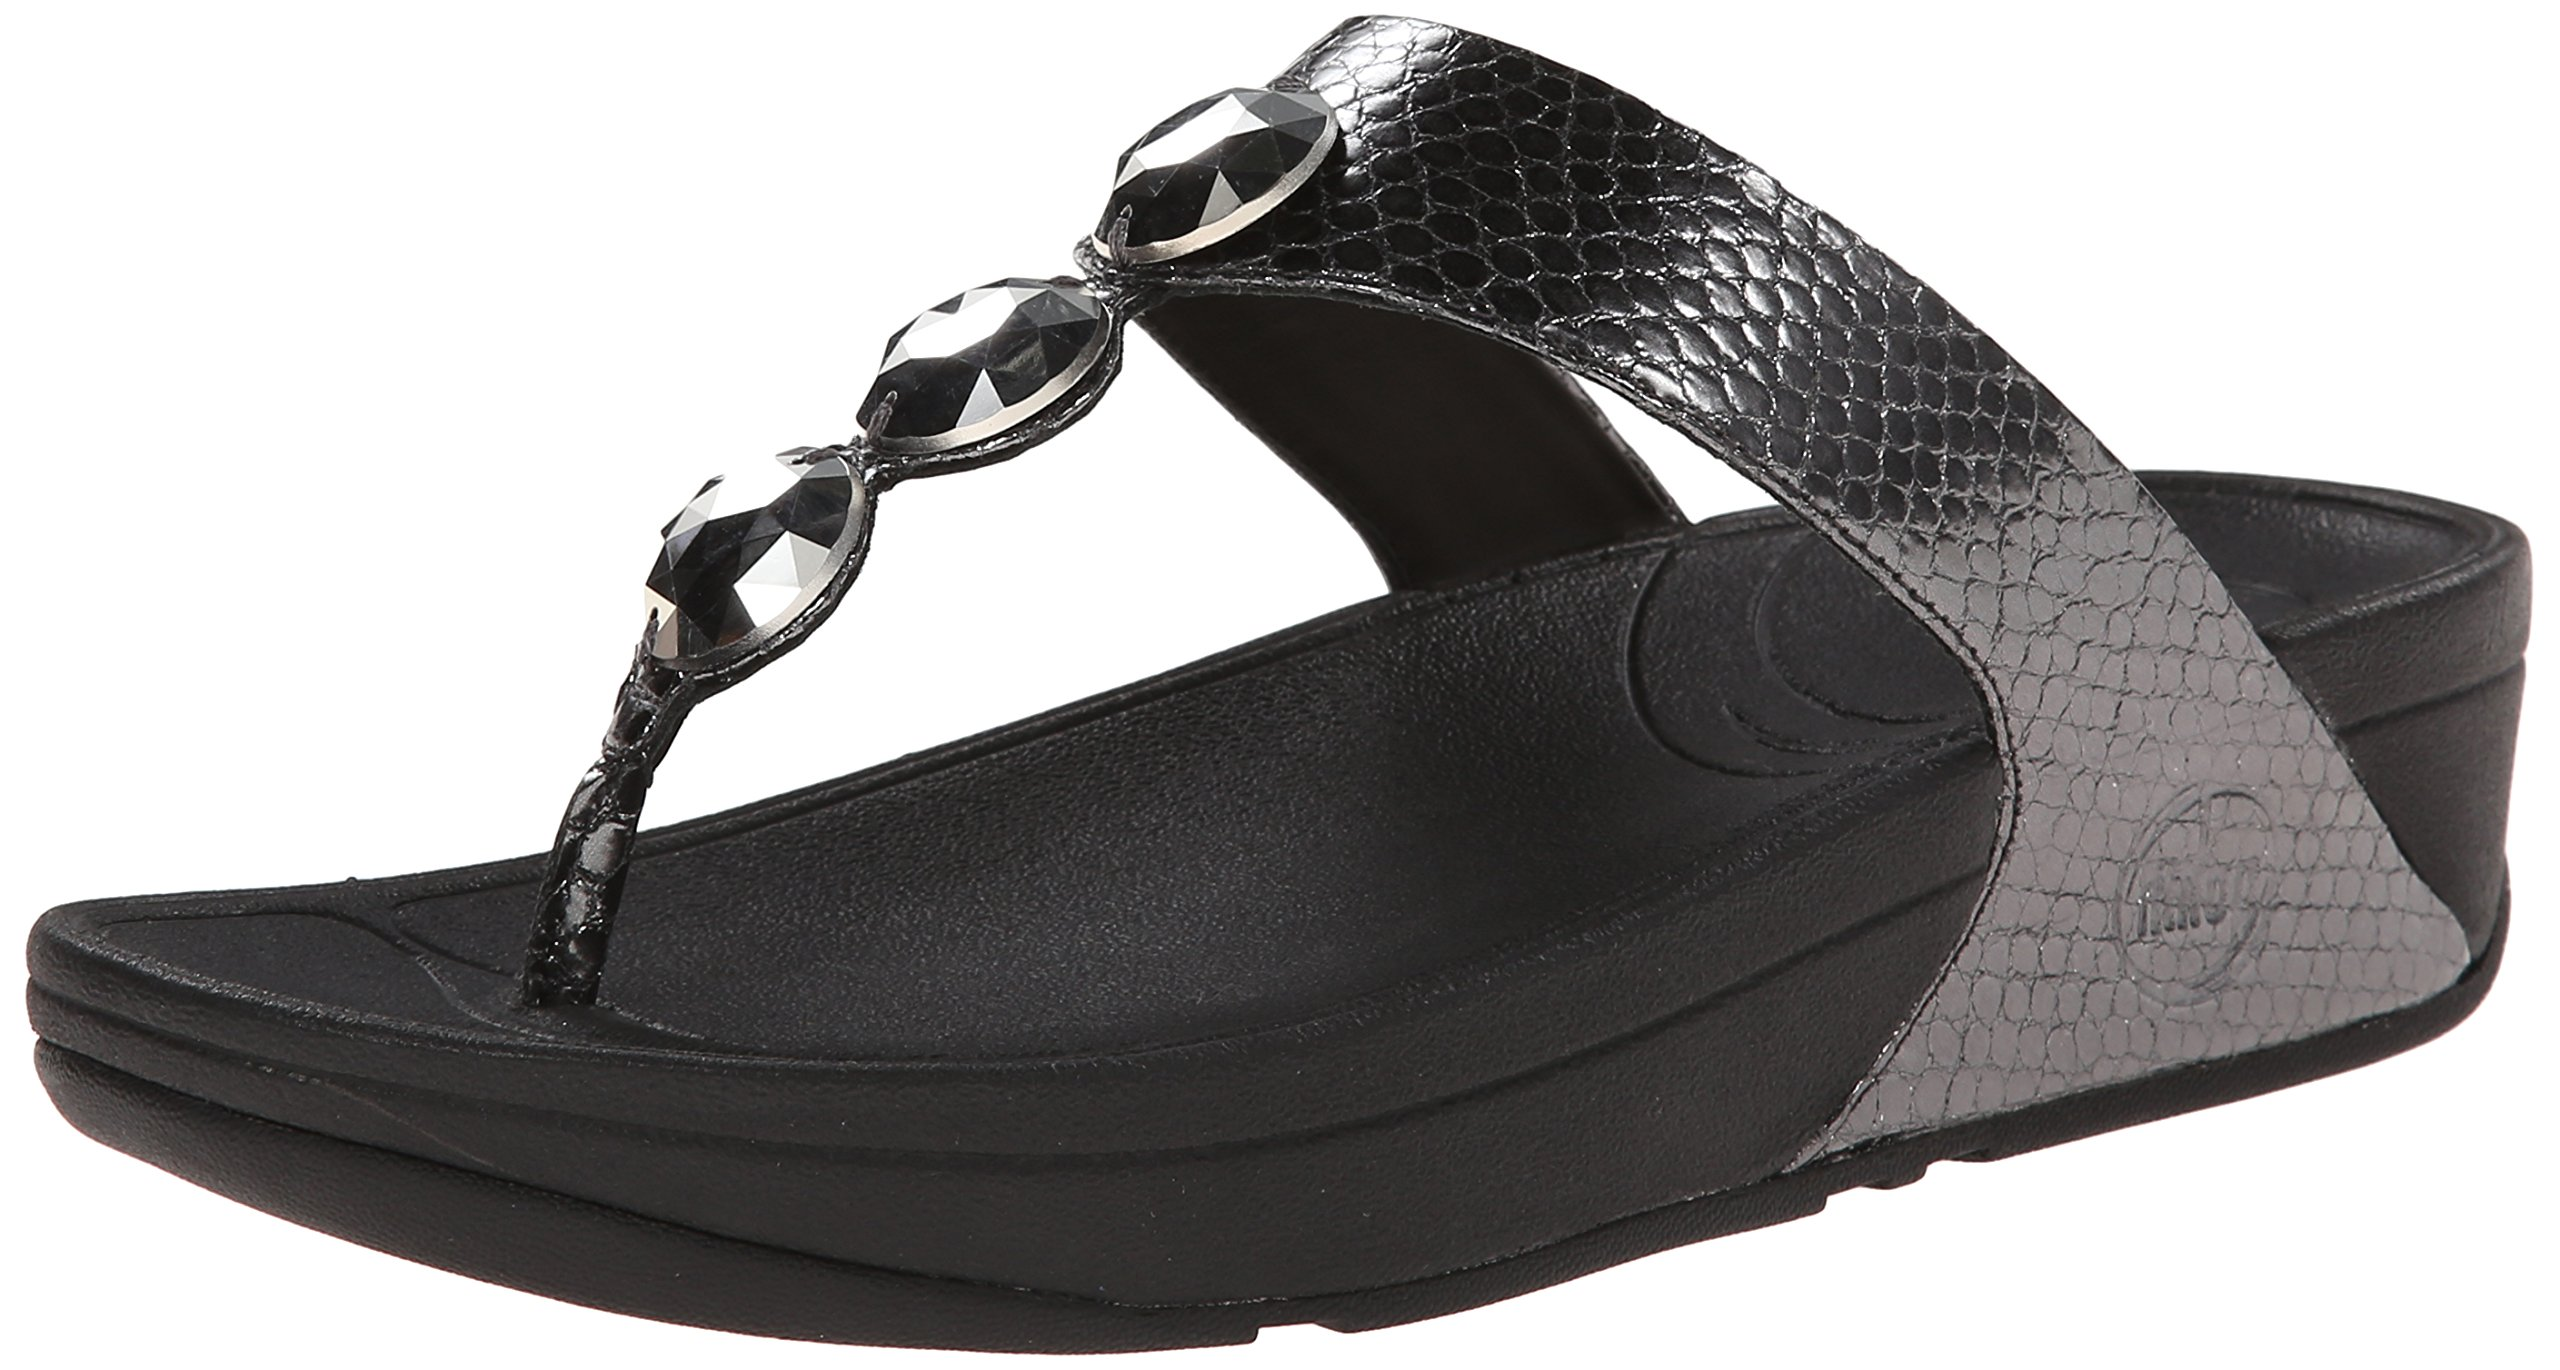 FitFlop Women's Petra Flip Flop, Pewter, 7 M US